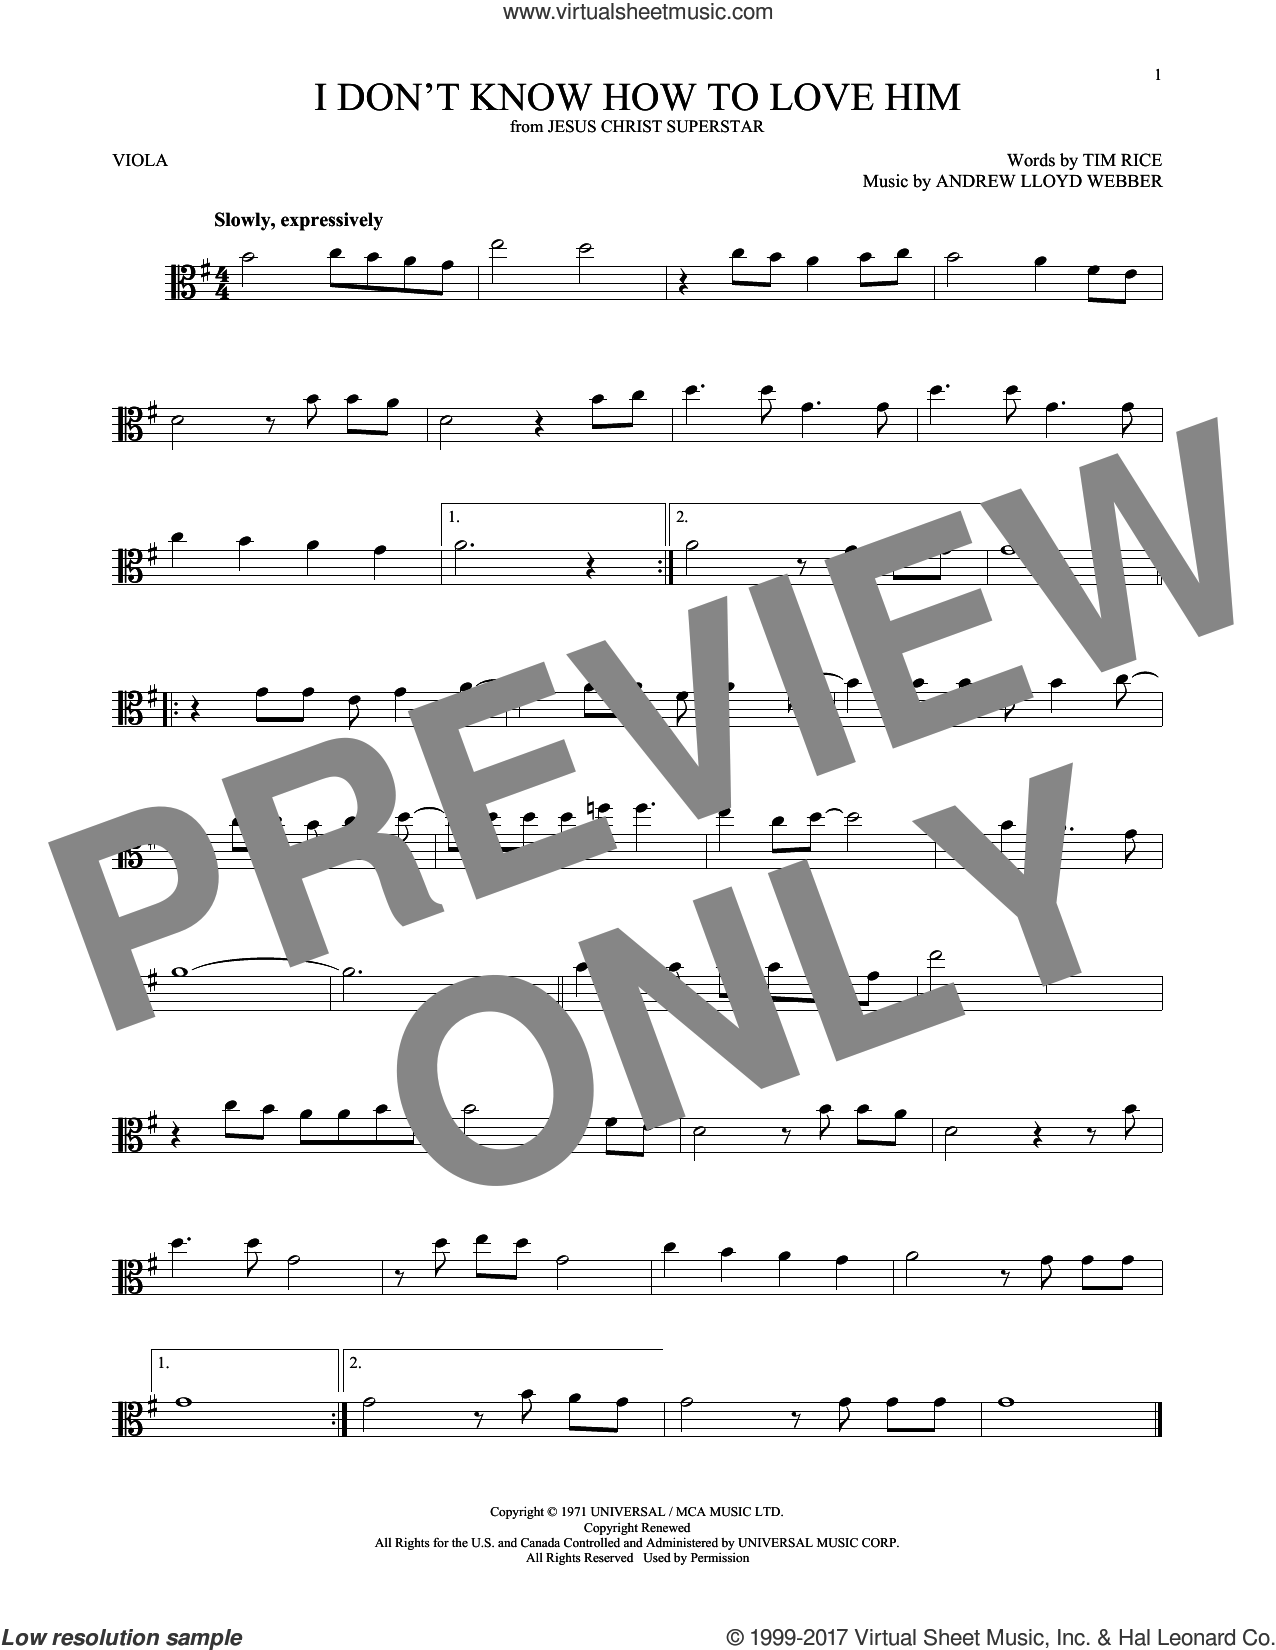 I Don't Know How To Love Him (from Jesus Christ Superstar) sheet music for viola solo by Andrew Lloyd Webber, Helen Reddy and Tim Rice, intermediate skill level